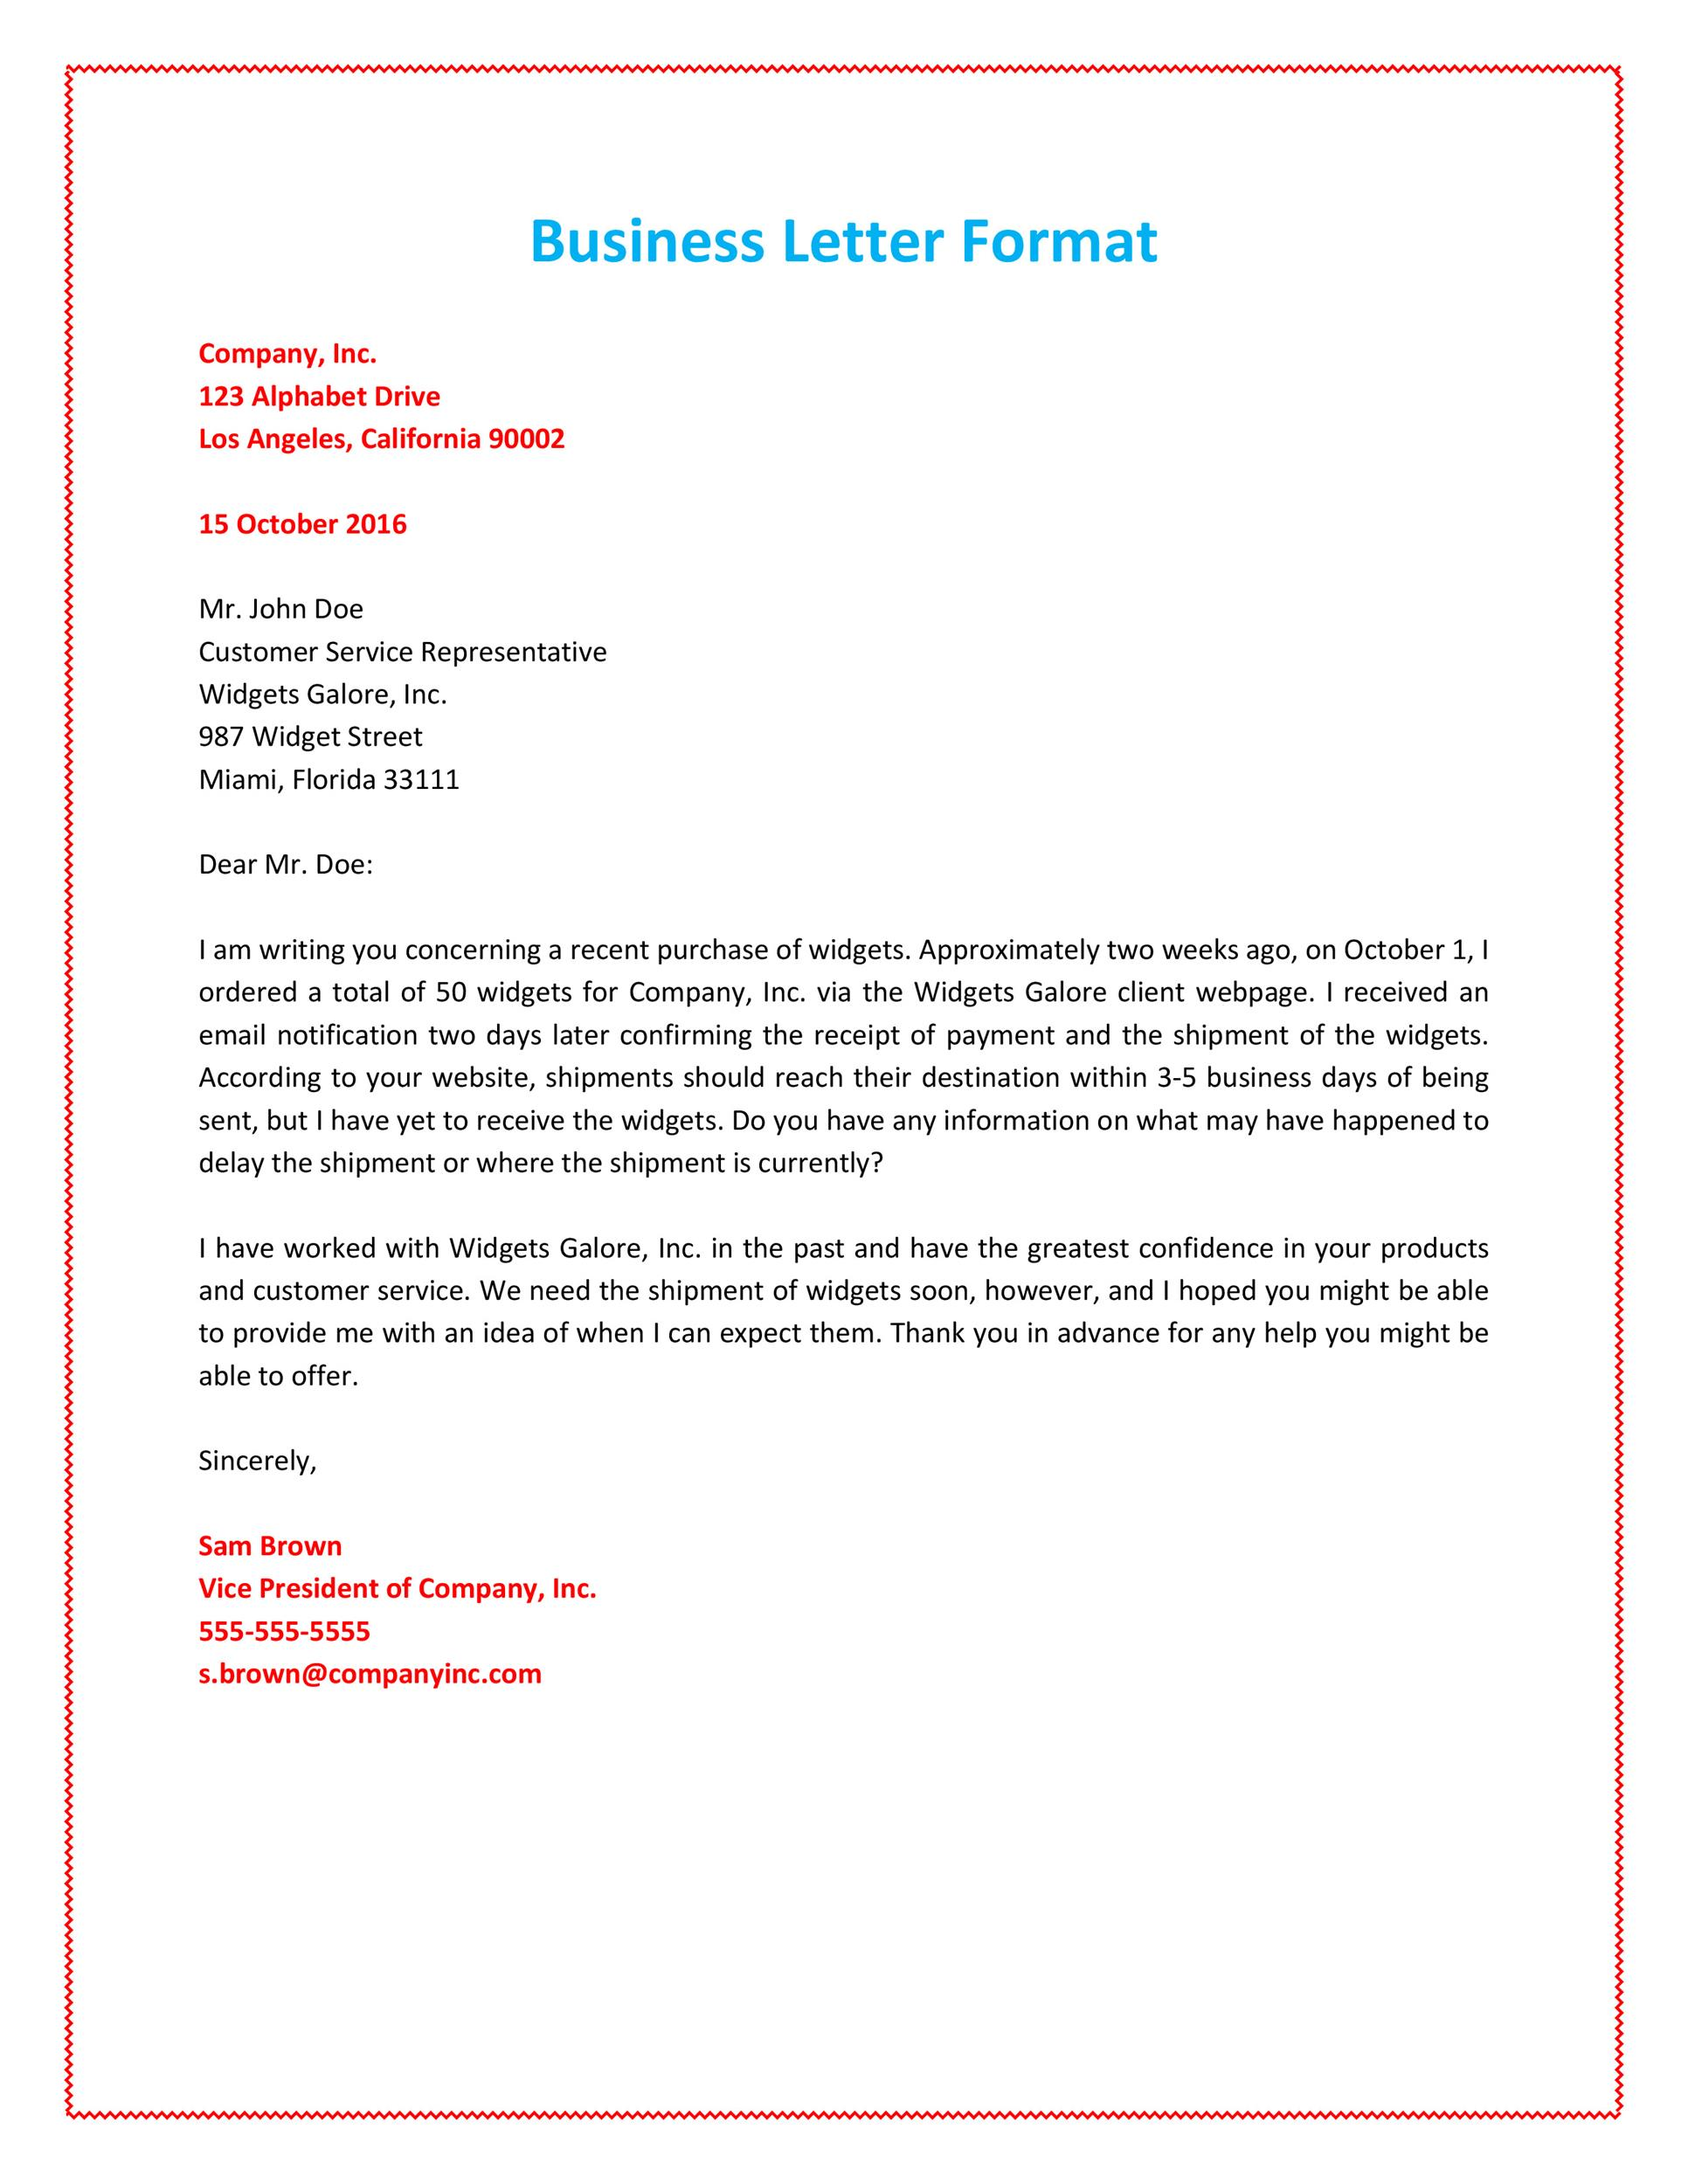 35 formal business letter format templates examples template lab business letter format example free formal business letter 01 spiritdancerdesigns